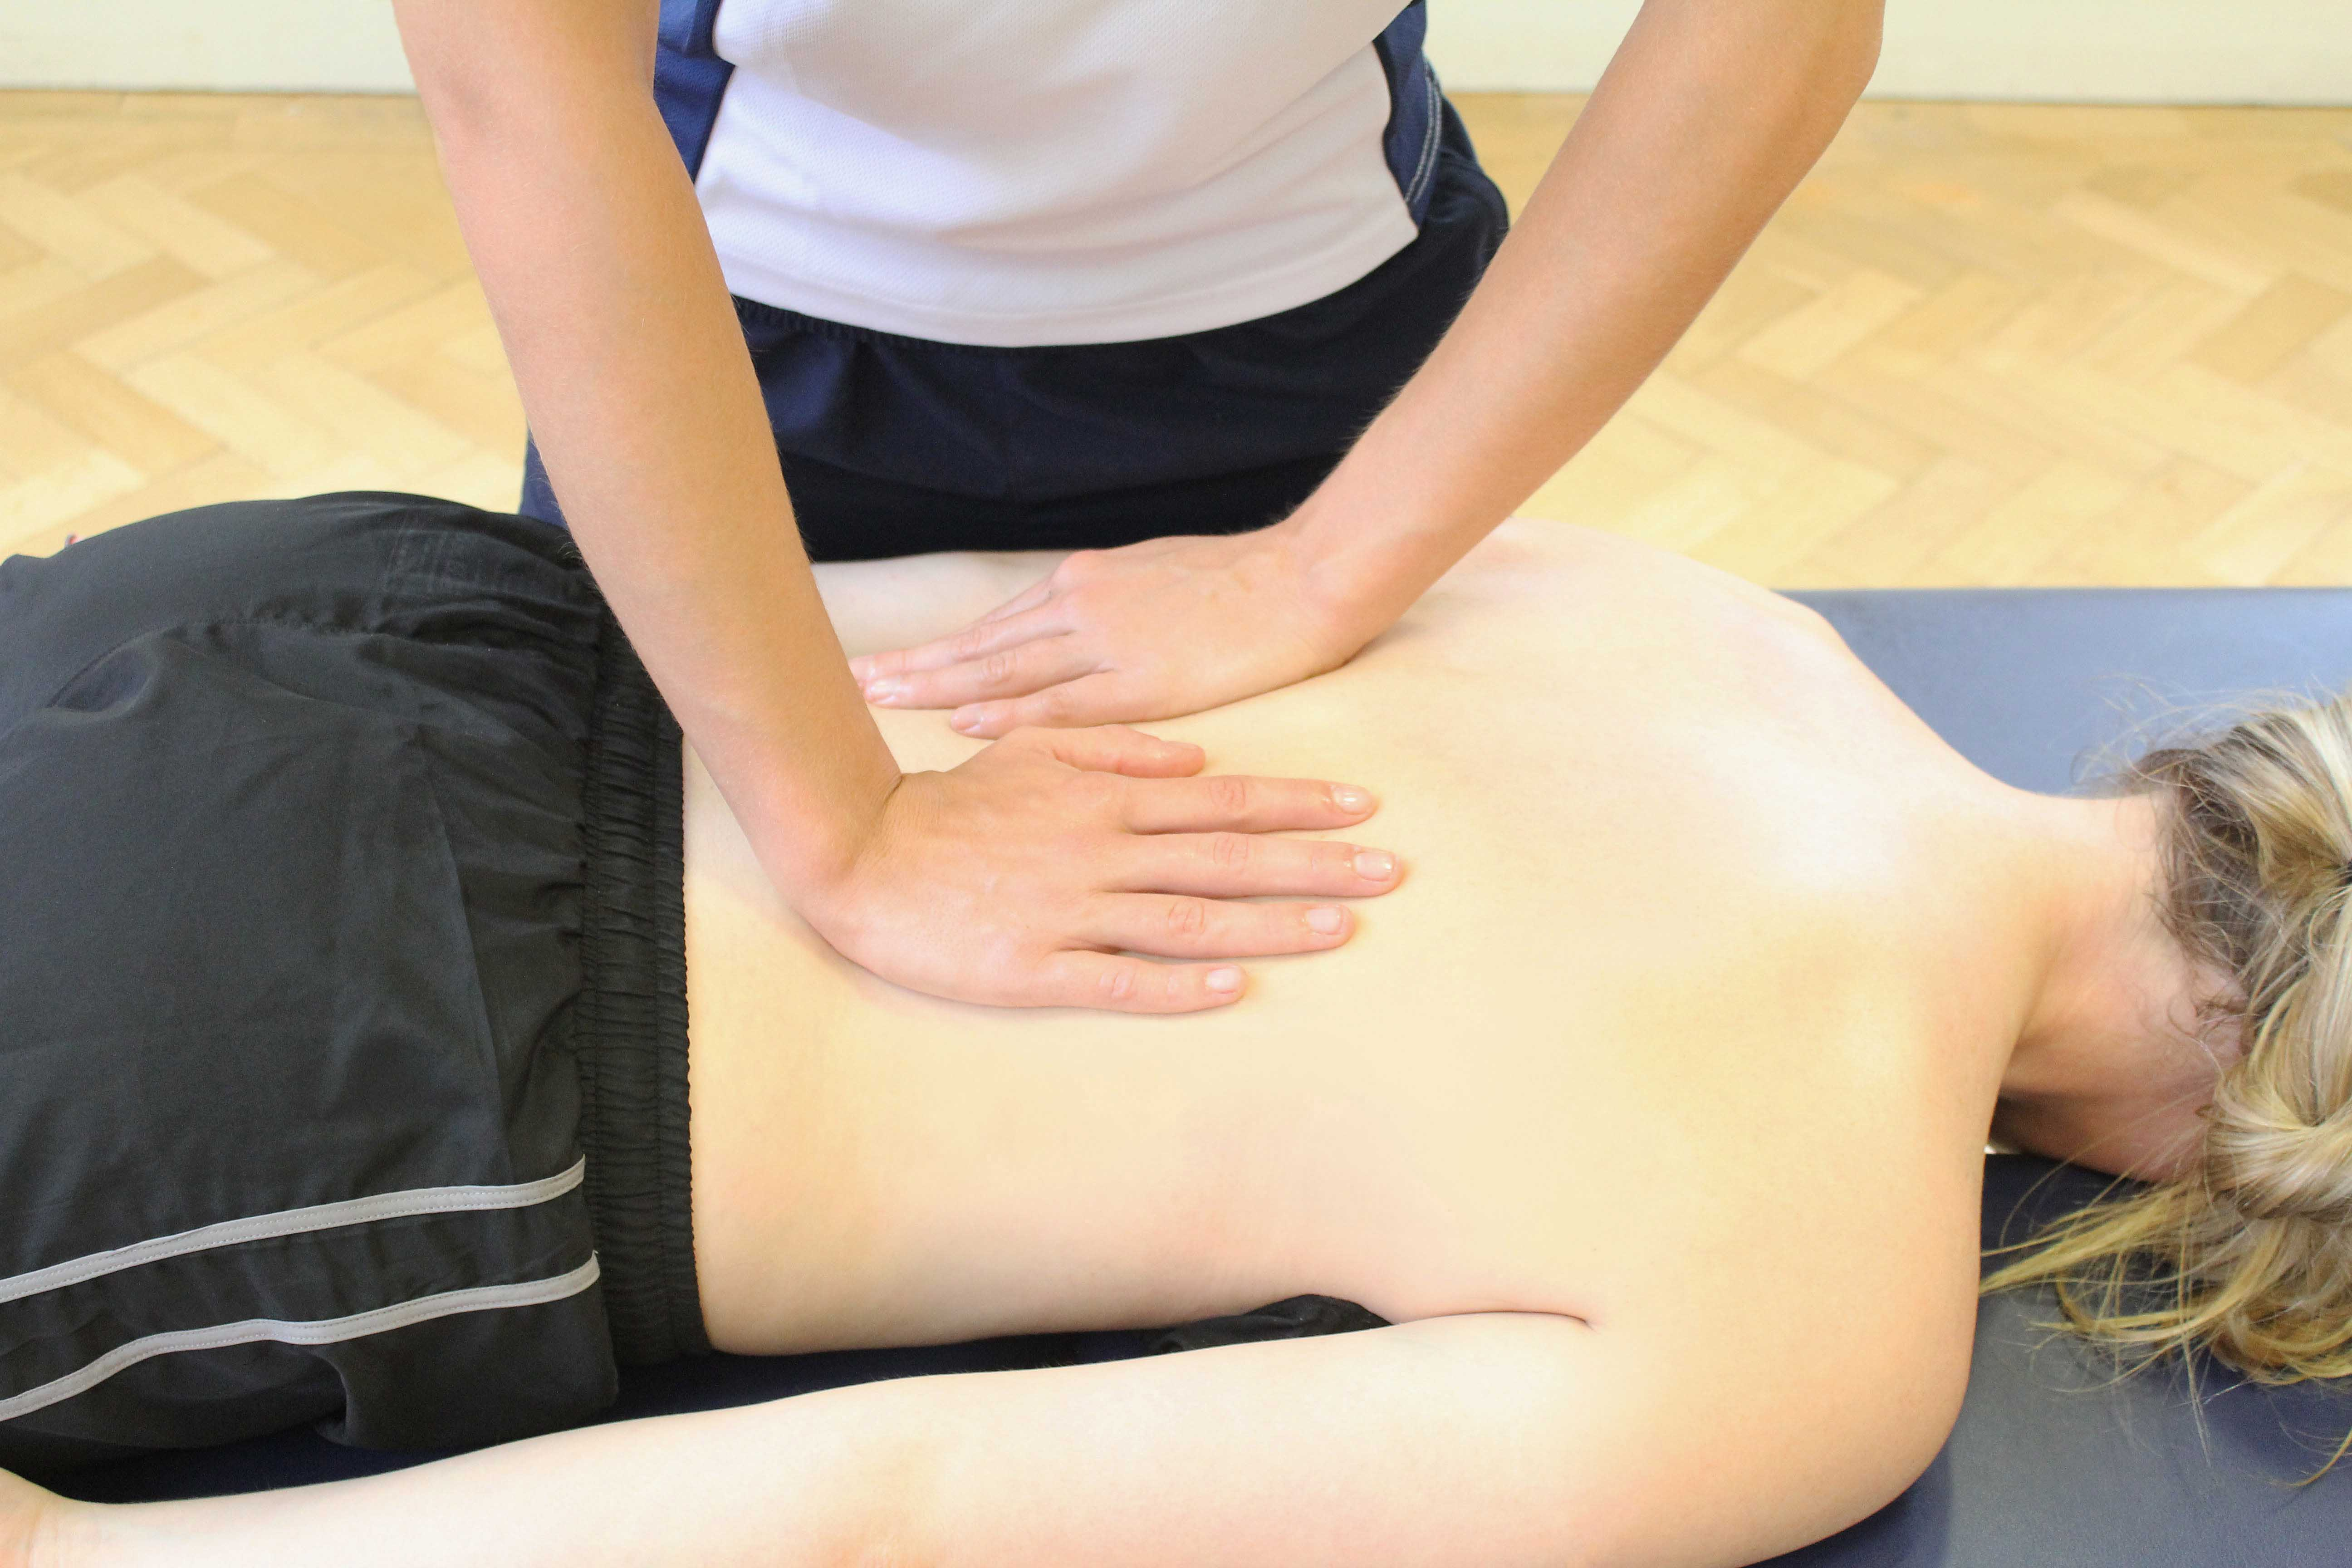 Soft tissue massage of the lower back muscles and connective tissue by specialist therapist